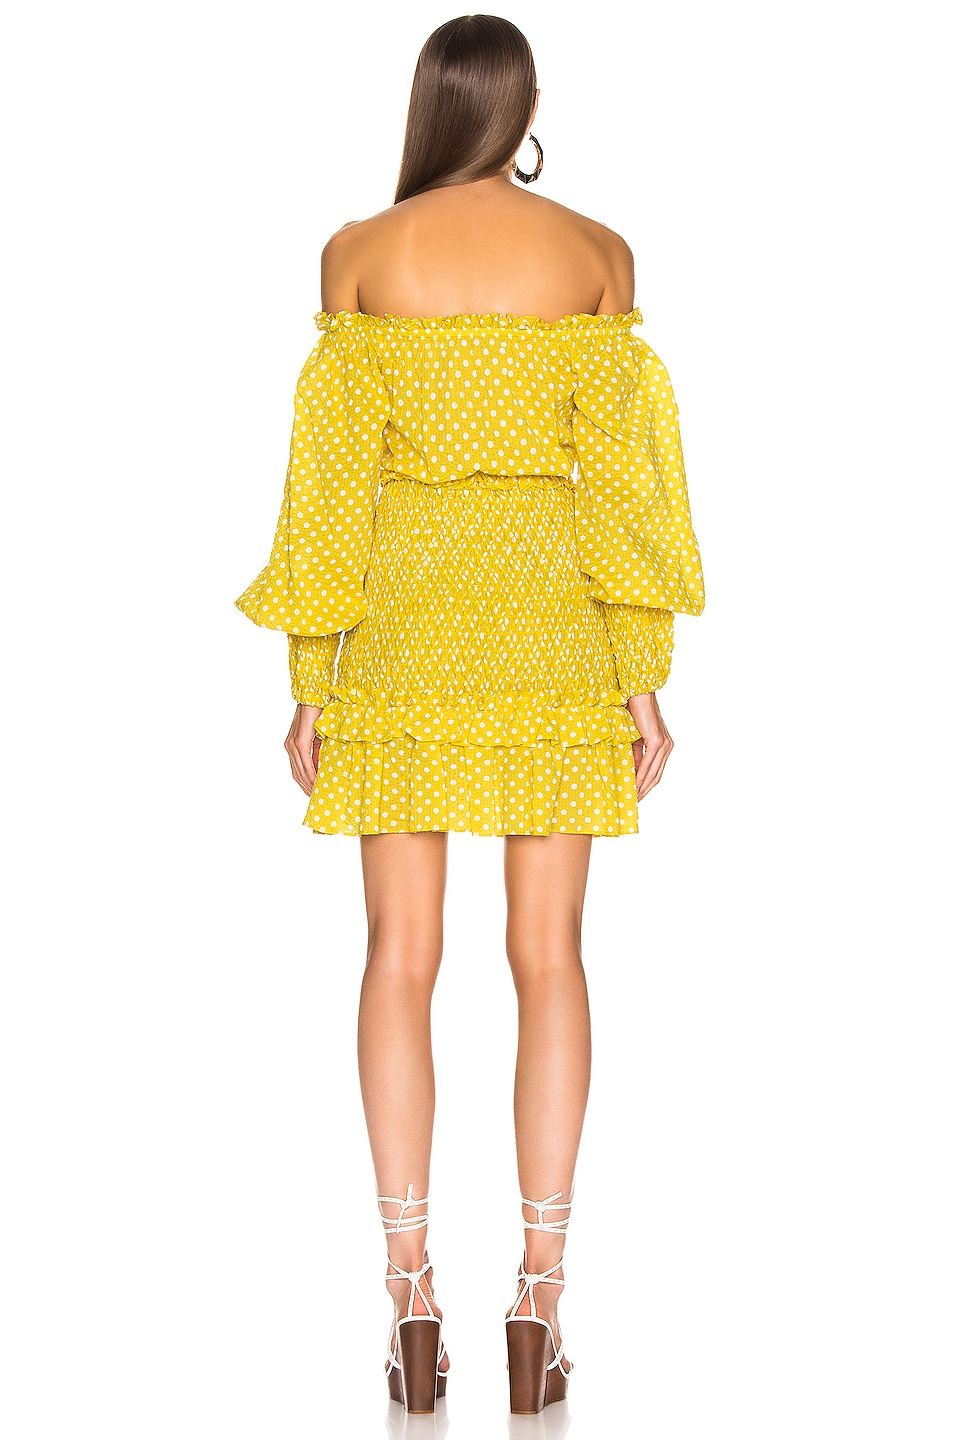 Image 3 of Alexis Marilena Dress in Yellow Dot